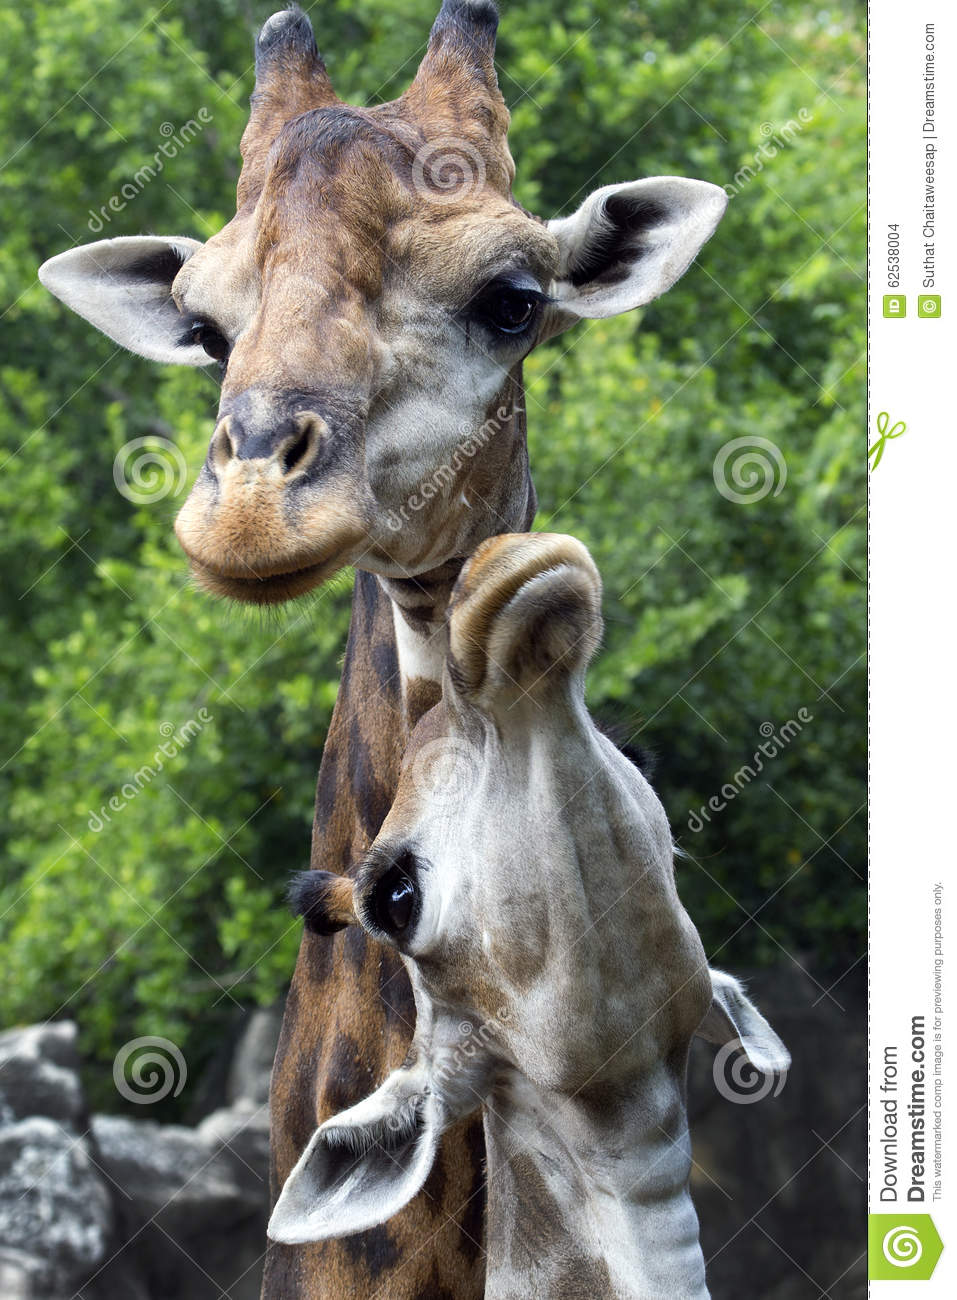 A Large Giraffe Mother And Baby Giraffe Stock Photo Image Of